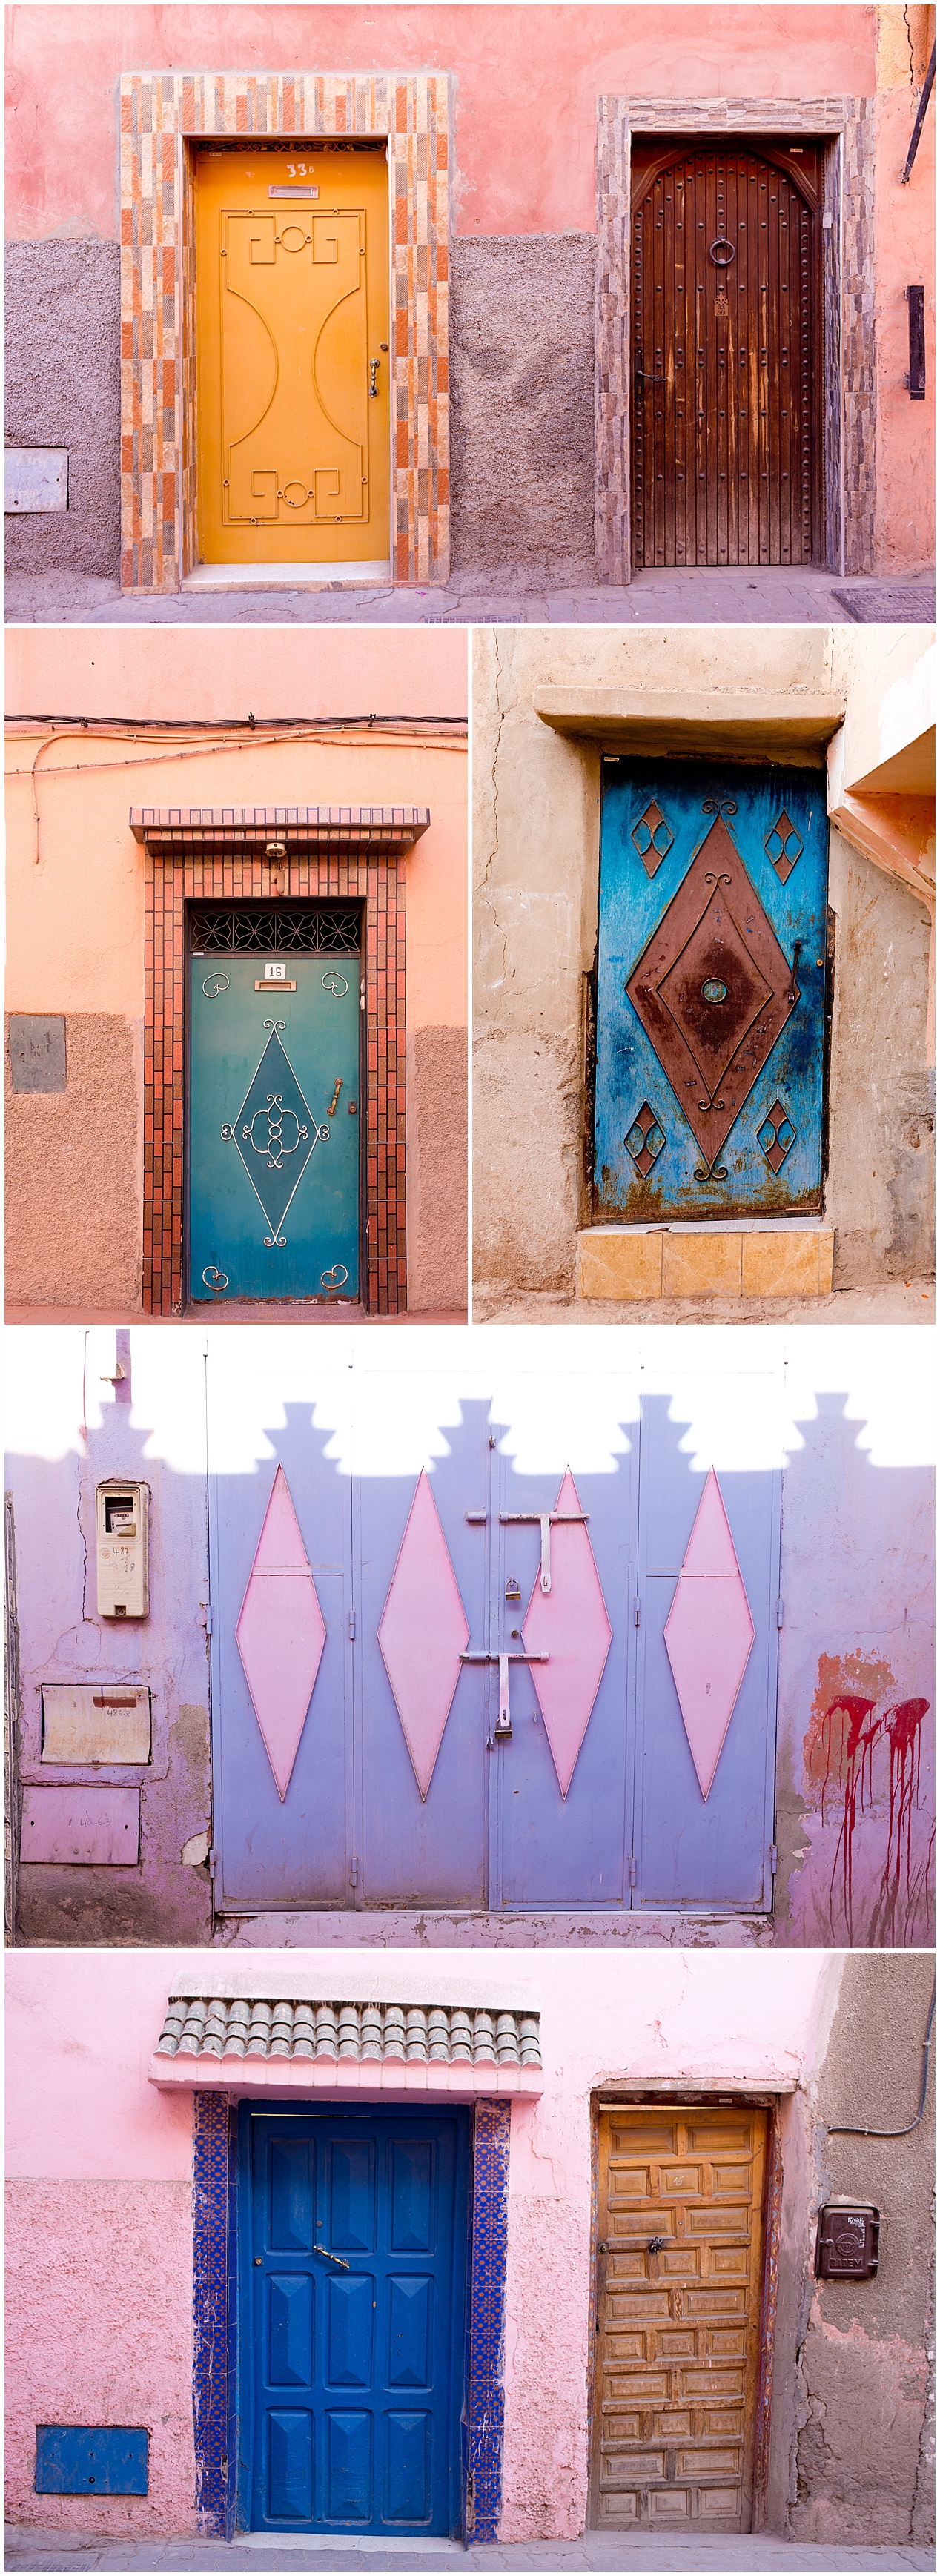 colorful doors in Marrakech, Morocco